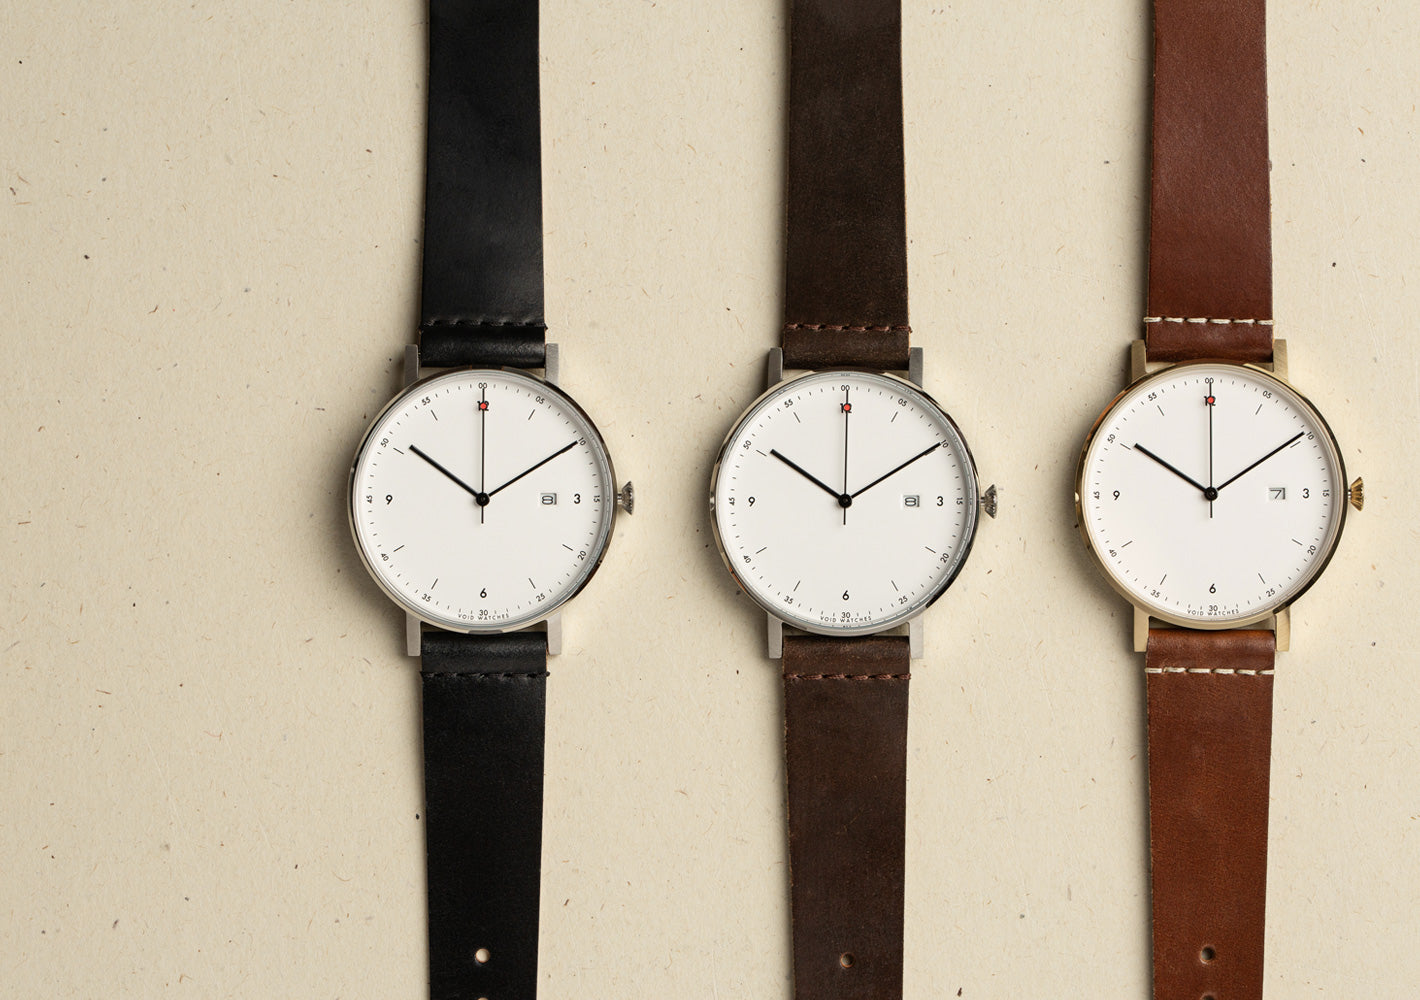 The PKG01 Horween Collection from VOID Watches, designed by Patrick Kim-Gustafson.